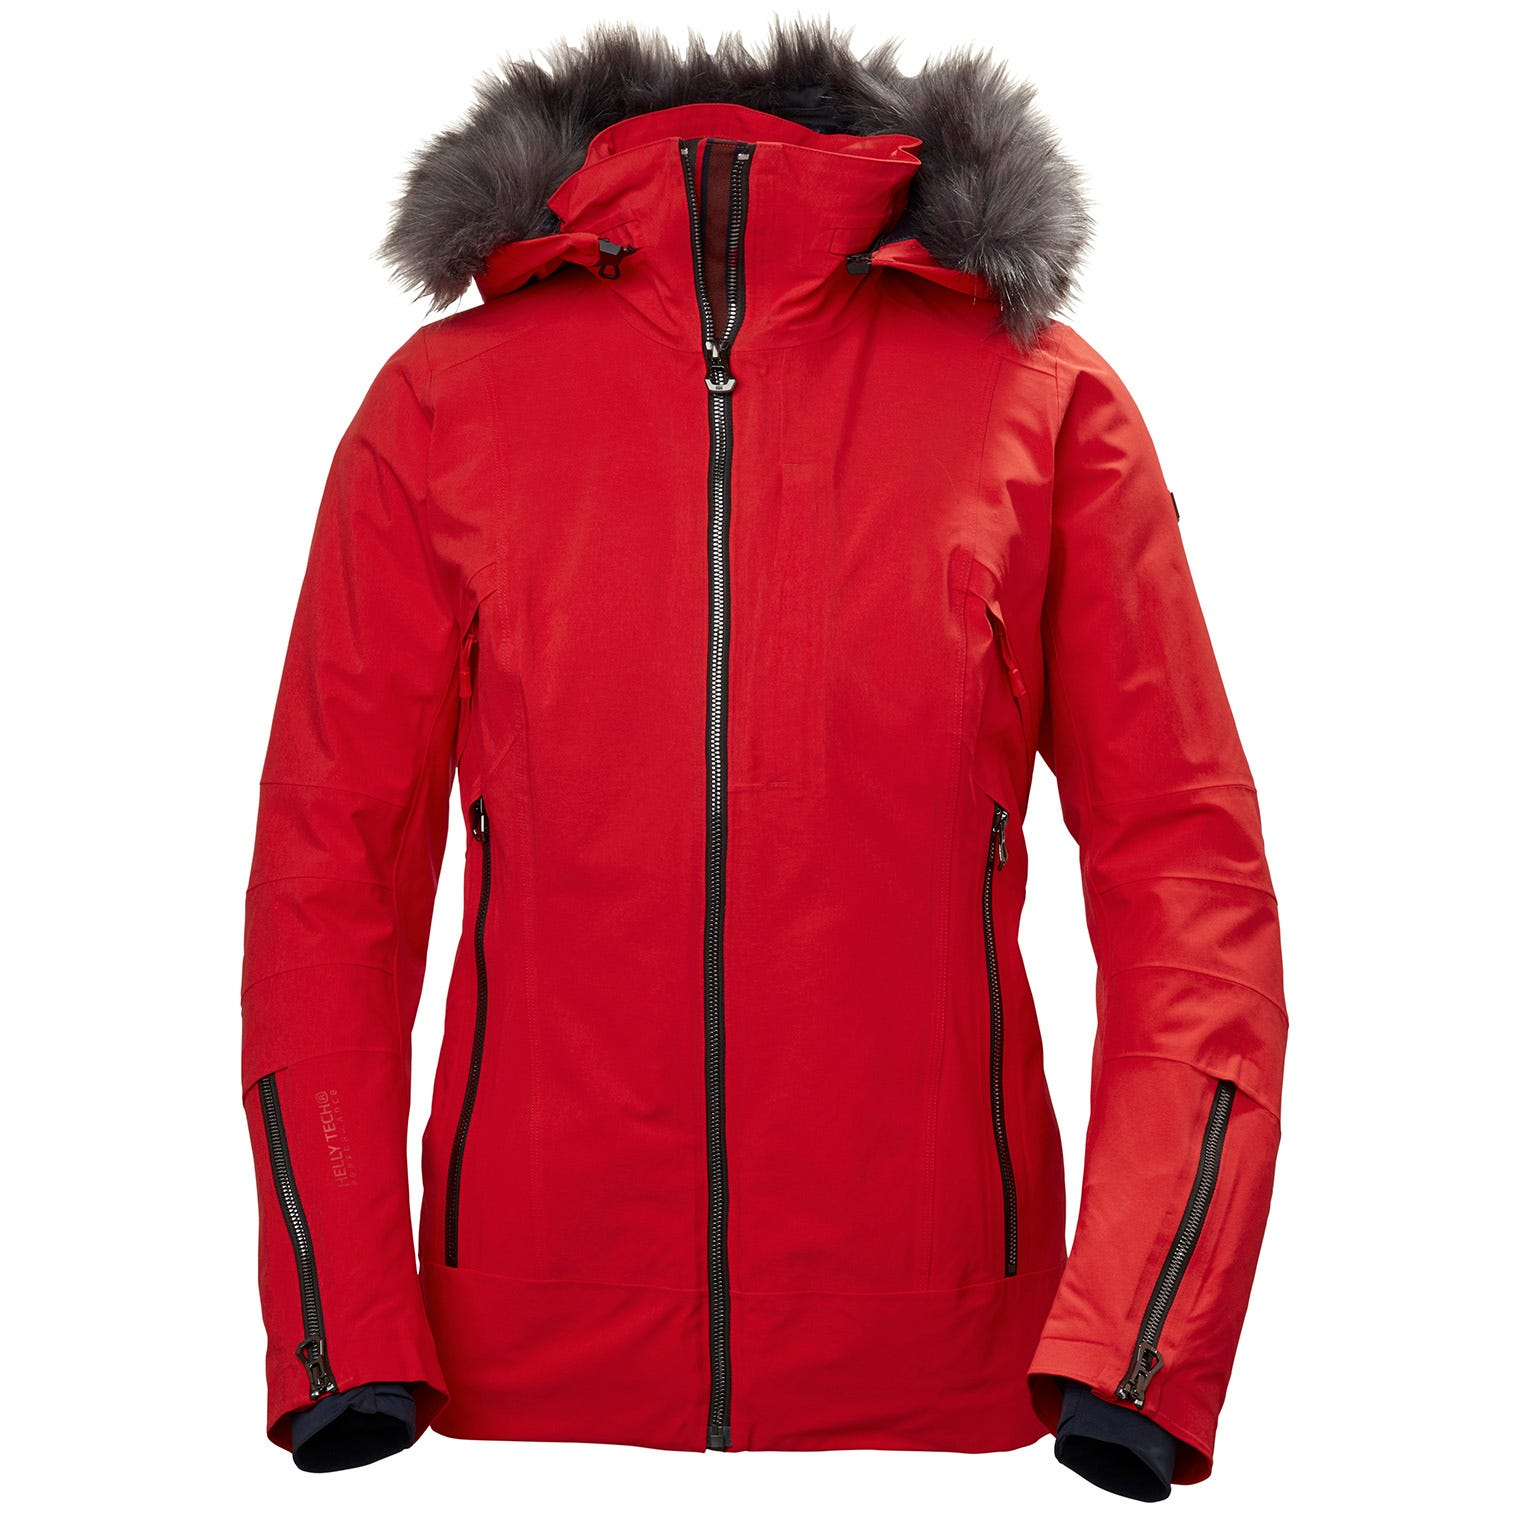 Womens Snowdancer Ski Jacket With Faux Fur Hood | Helly Hansen Womens Red XL